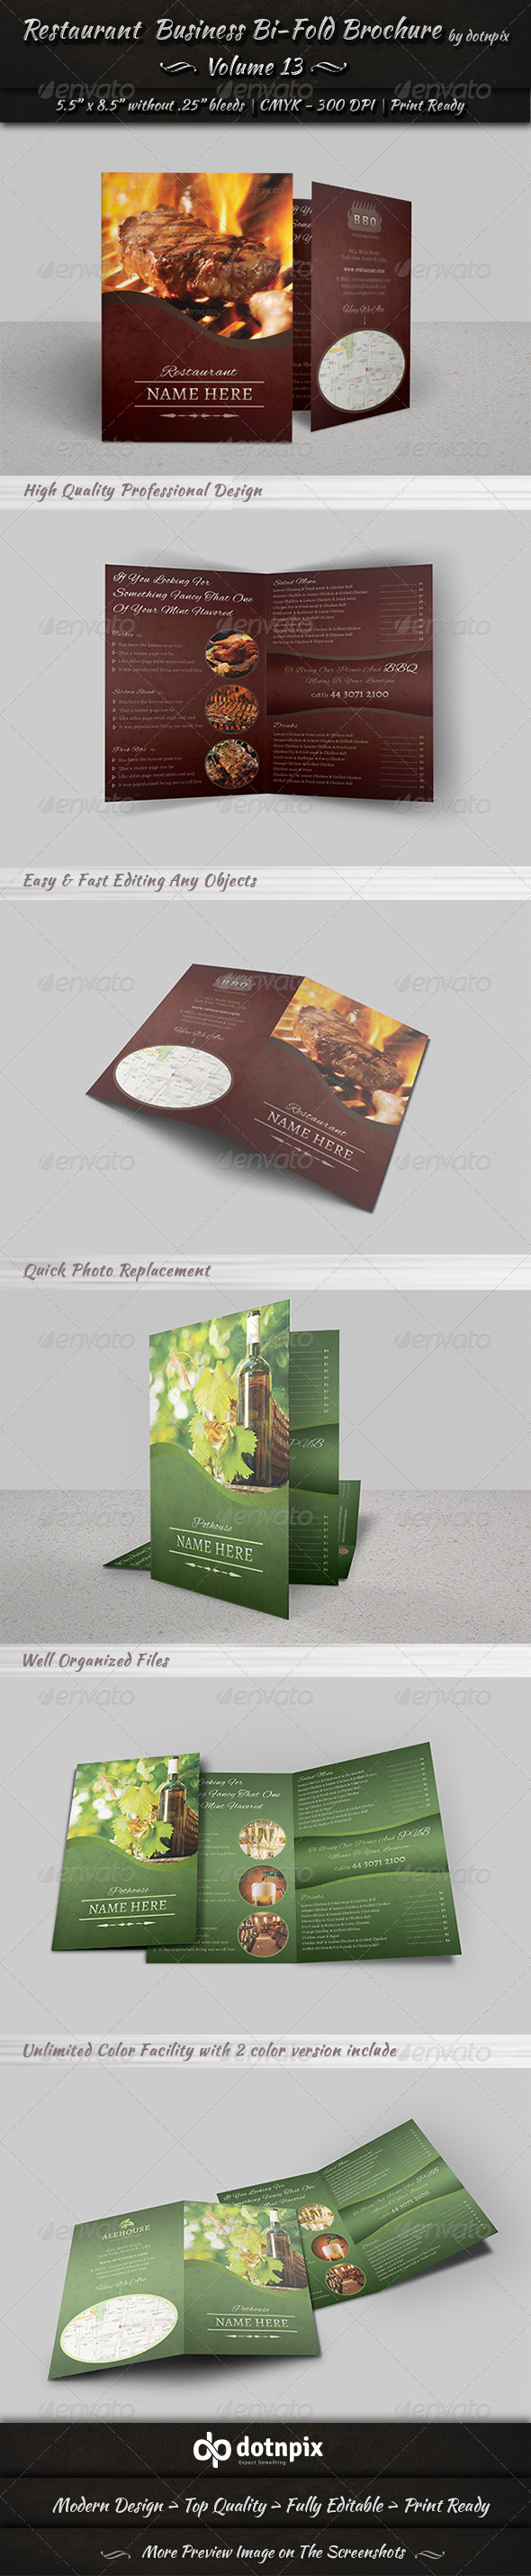 Restaurant Business Bi-Fold Brochure | Volume 13 - Corporate Brochures